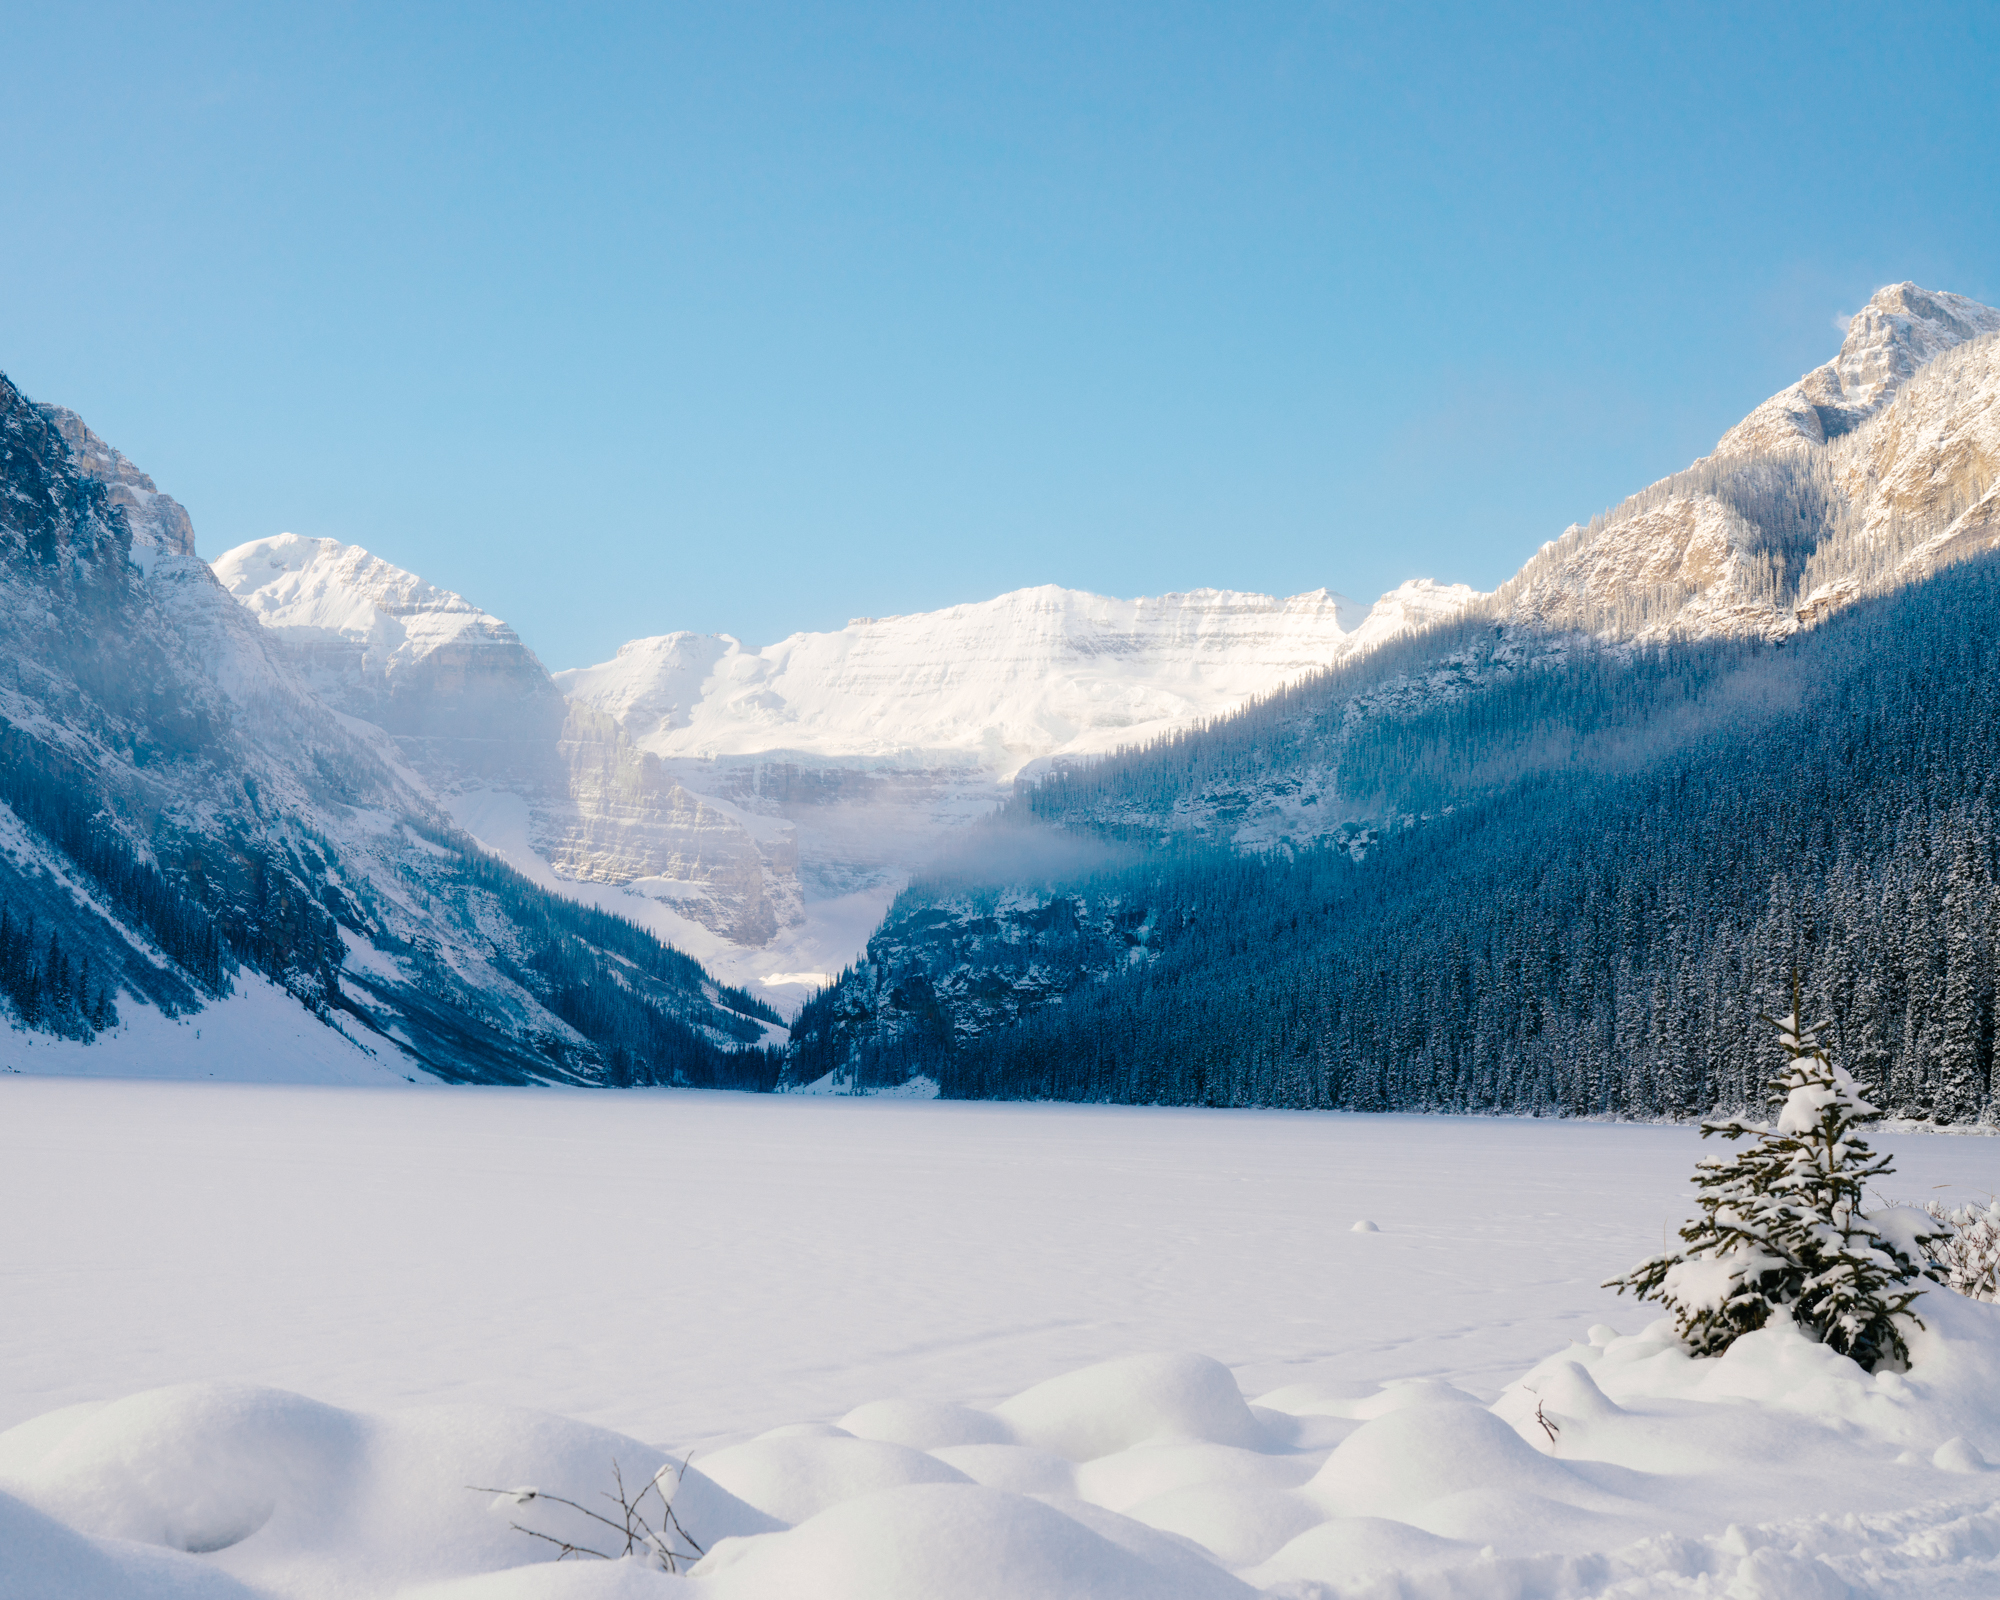 Things to do in Banff National Park